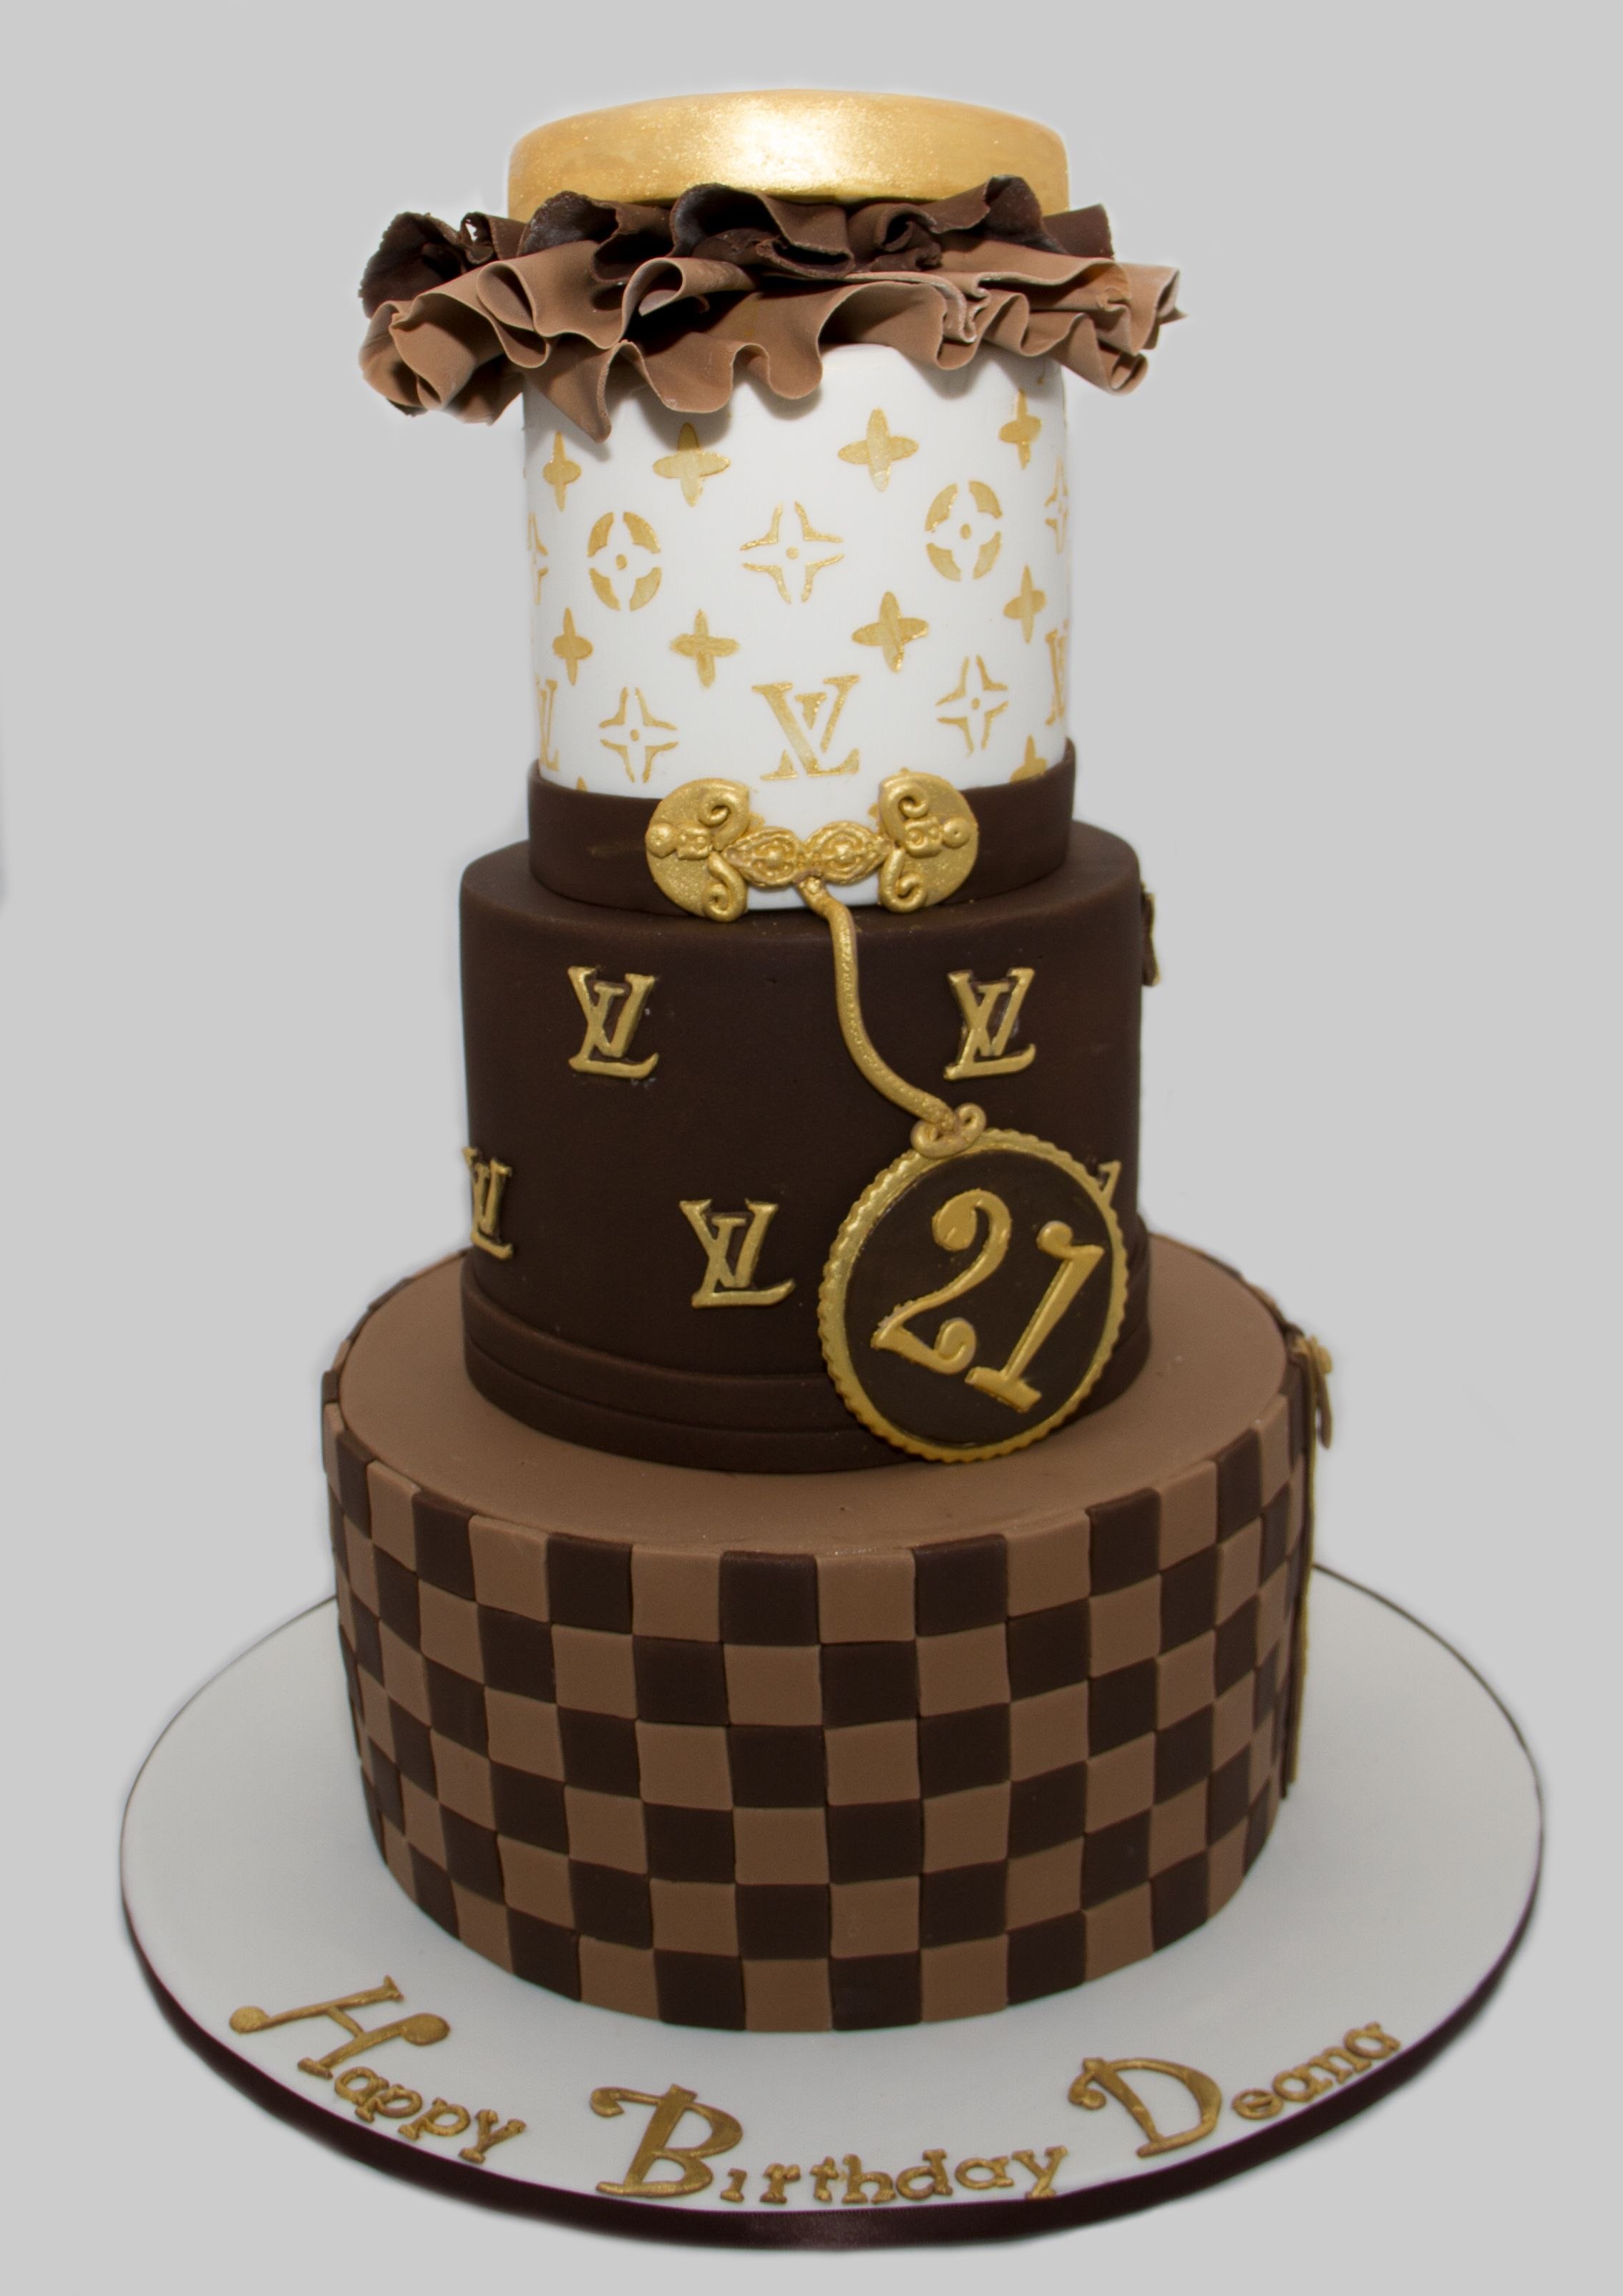 3 teir Louis Vuitton chocolate mud 21st birthday cake